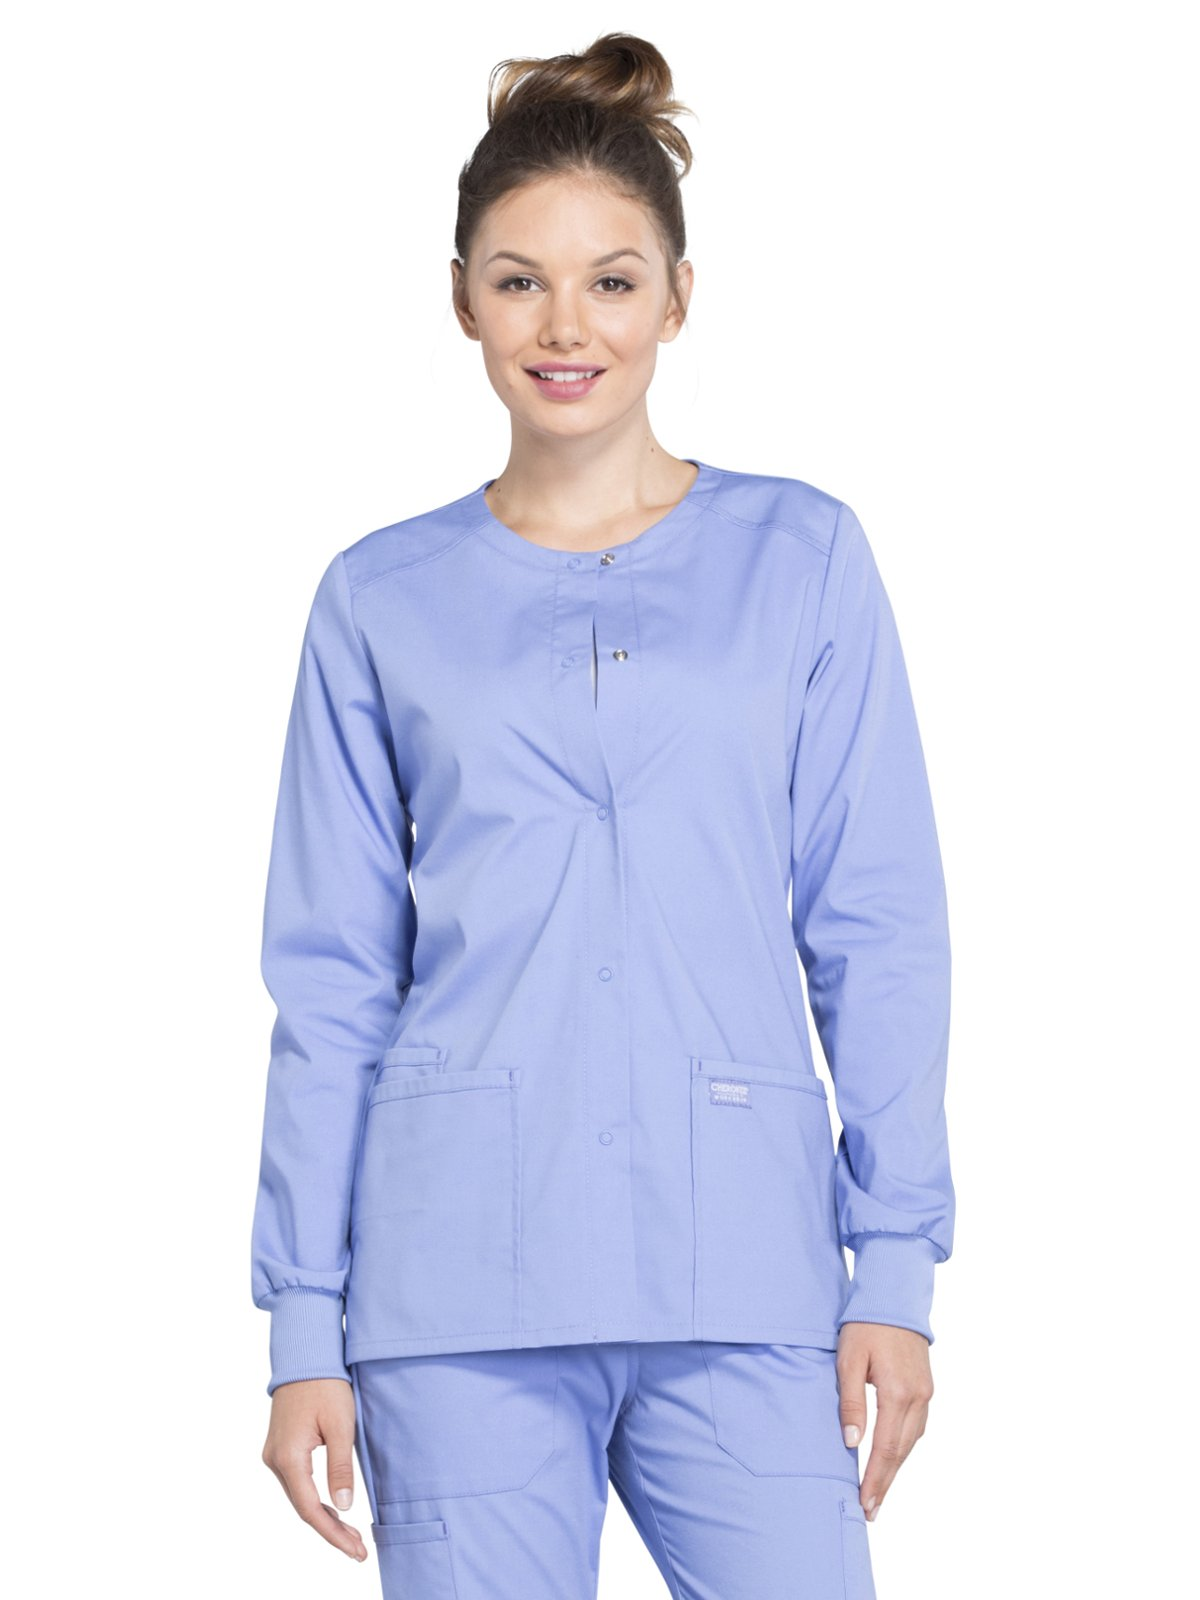 Cherokee Professionals Workwear Women's Snap Front Warm-Up Solid Scrub Jacket Medium Ciel Blue by Cherokee (Image #1)